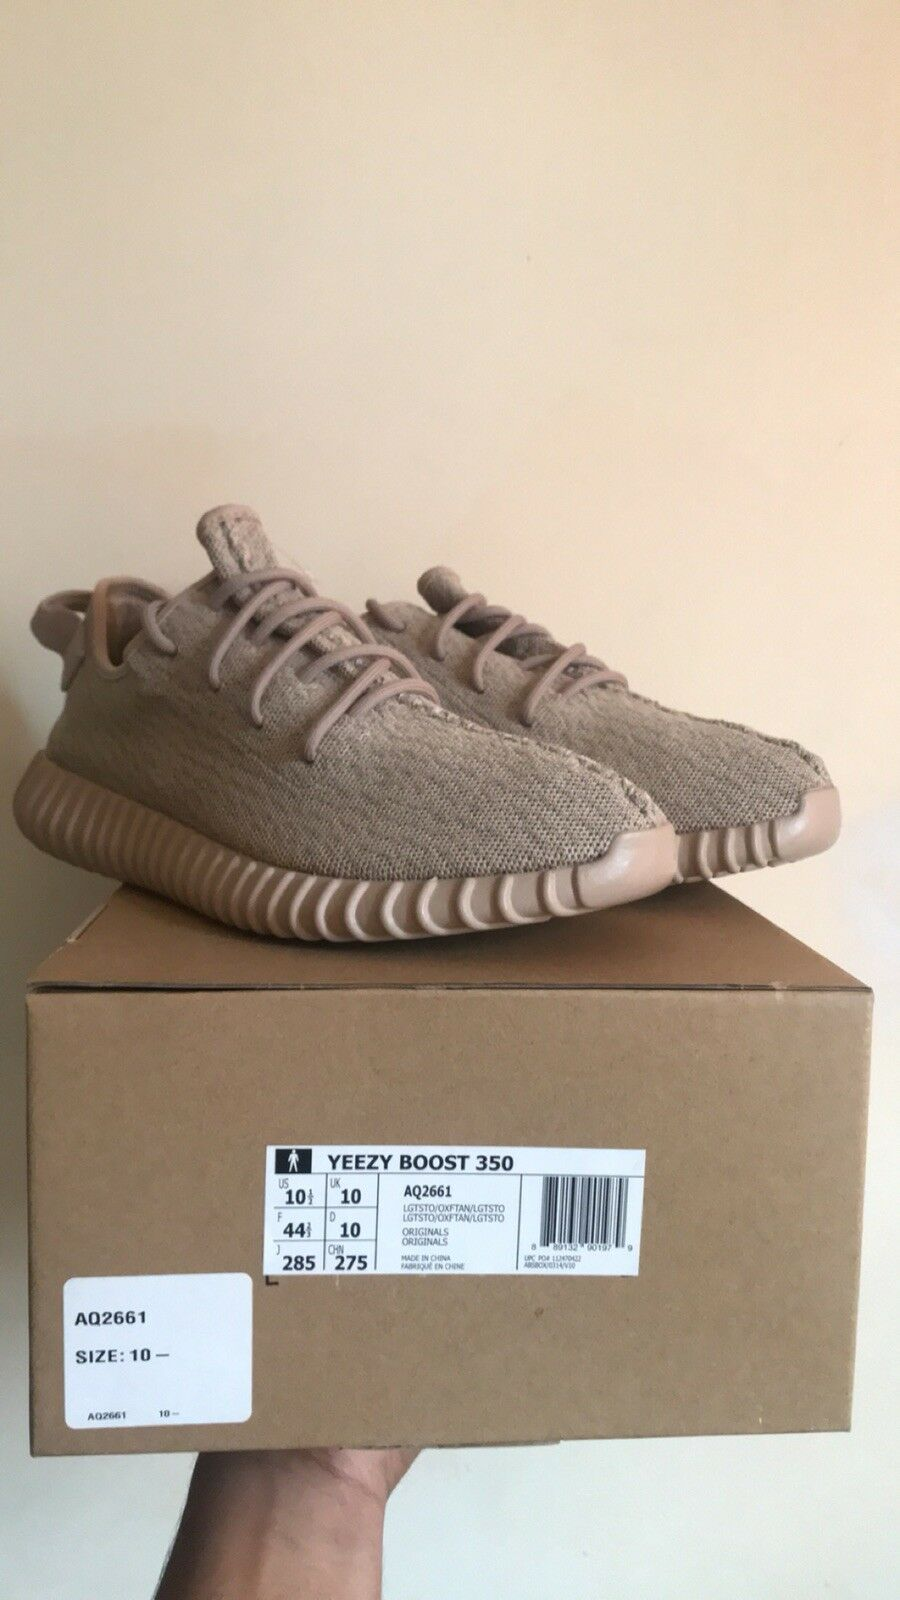 Adidas Yeezy Boost 350 Oxford Tan Size 10.5